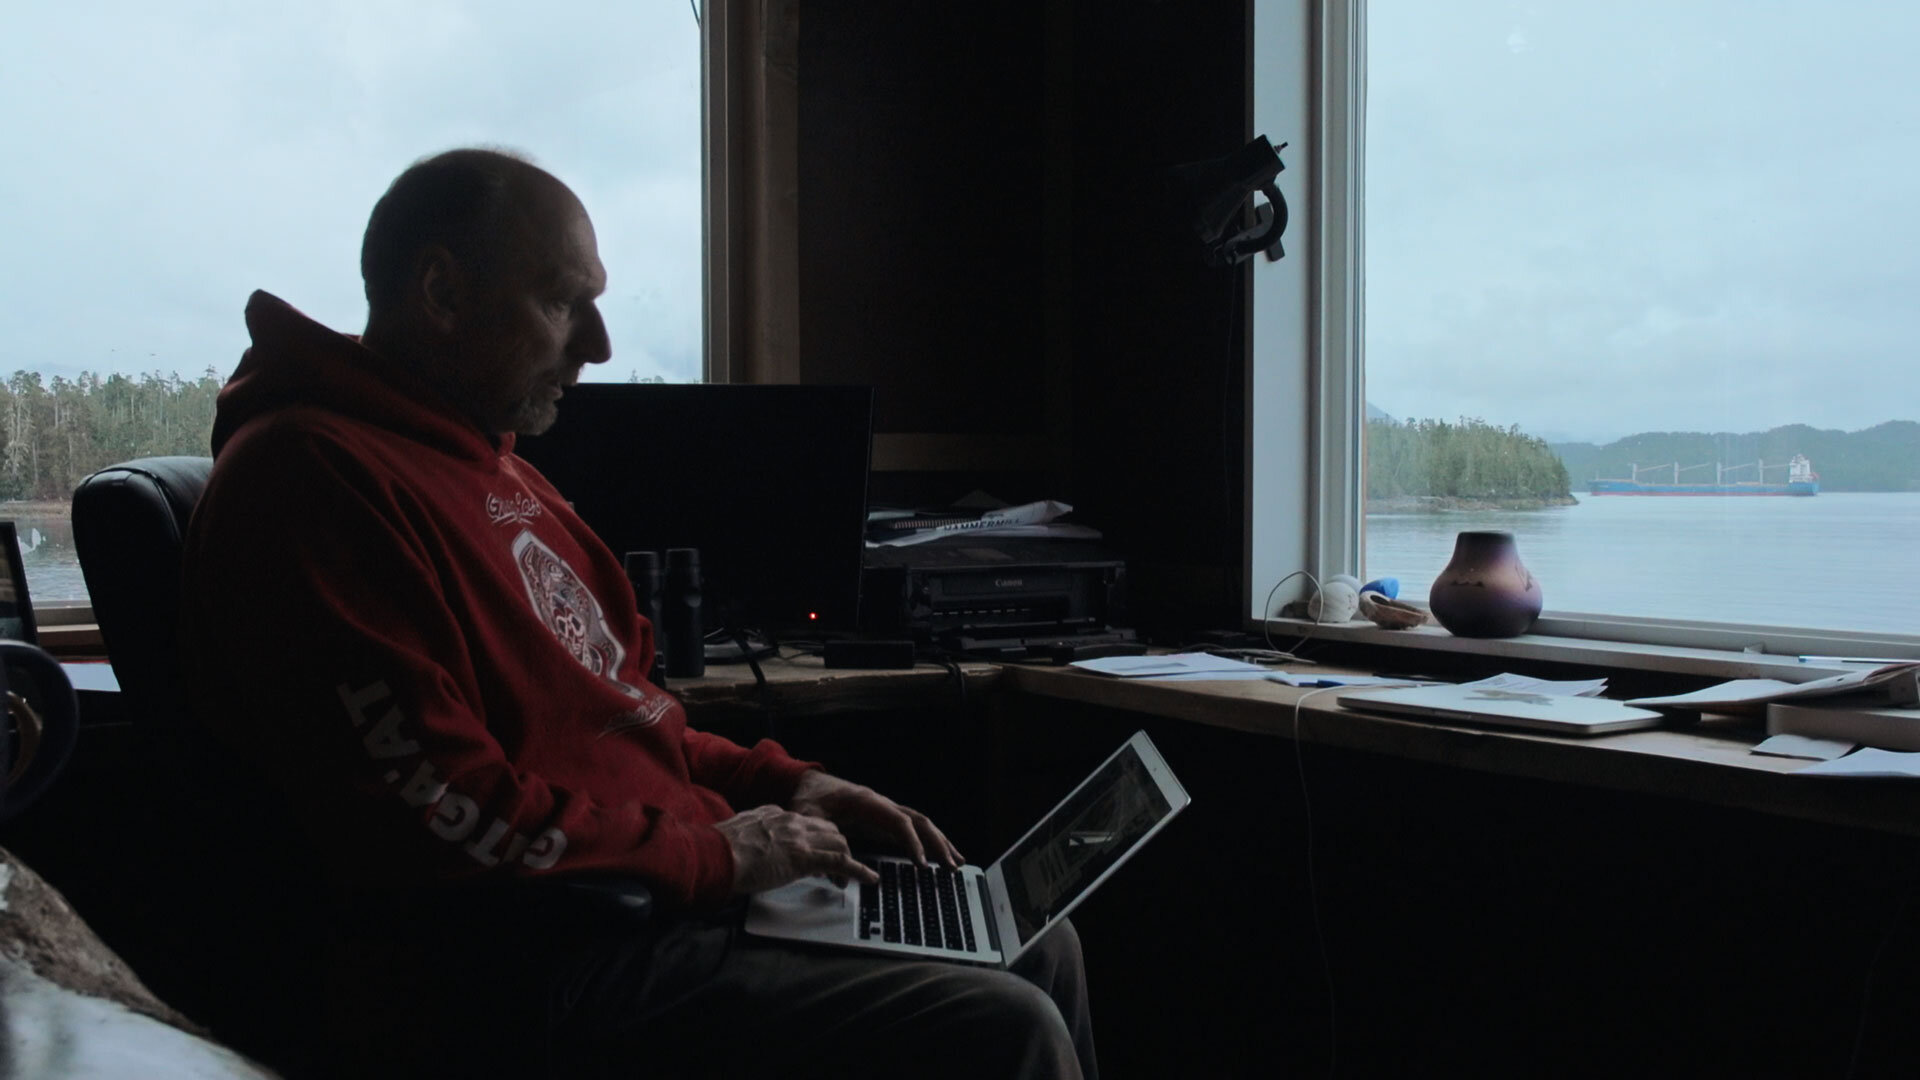 Hermann Meuter working at the Cetacea Lab on Gil Island.